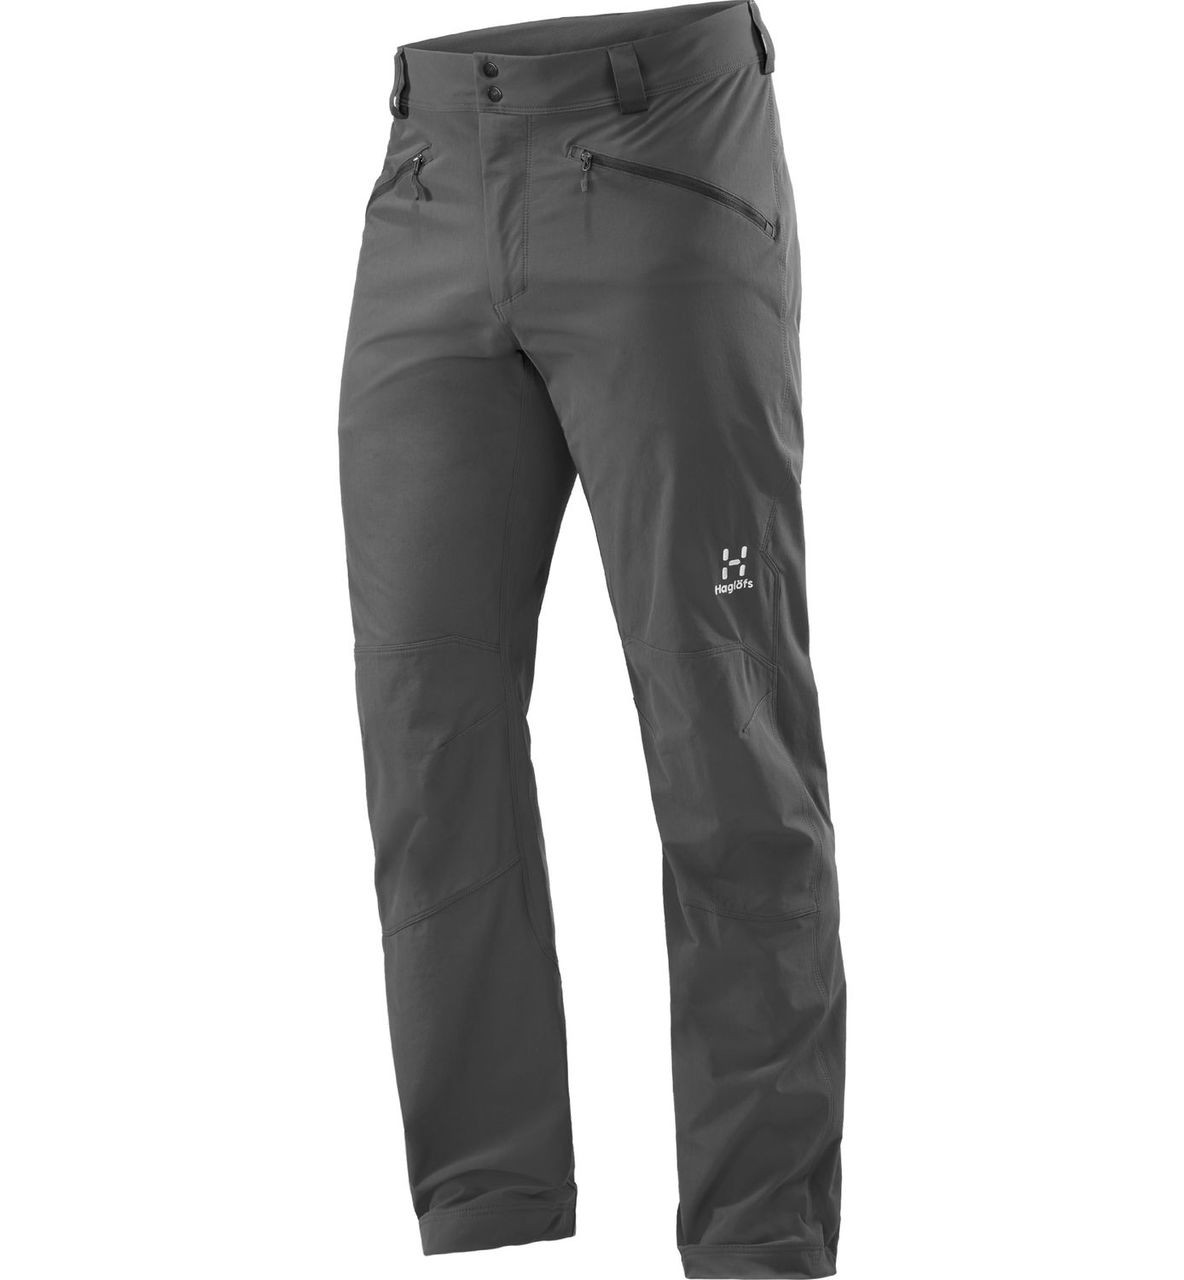 Haglofs Moran Pant Men Magnetite | men's walking pant side